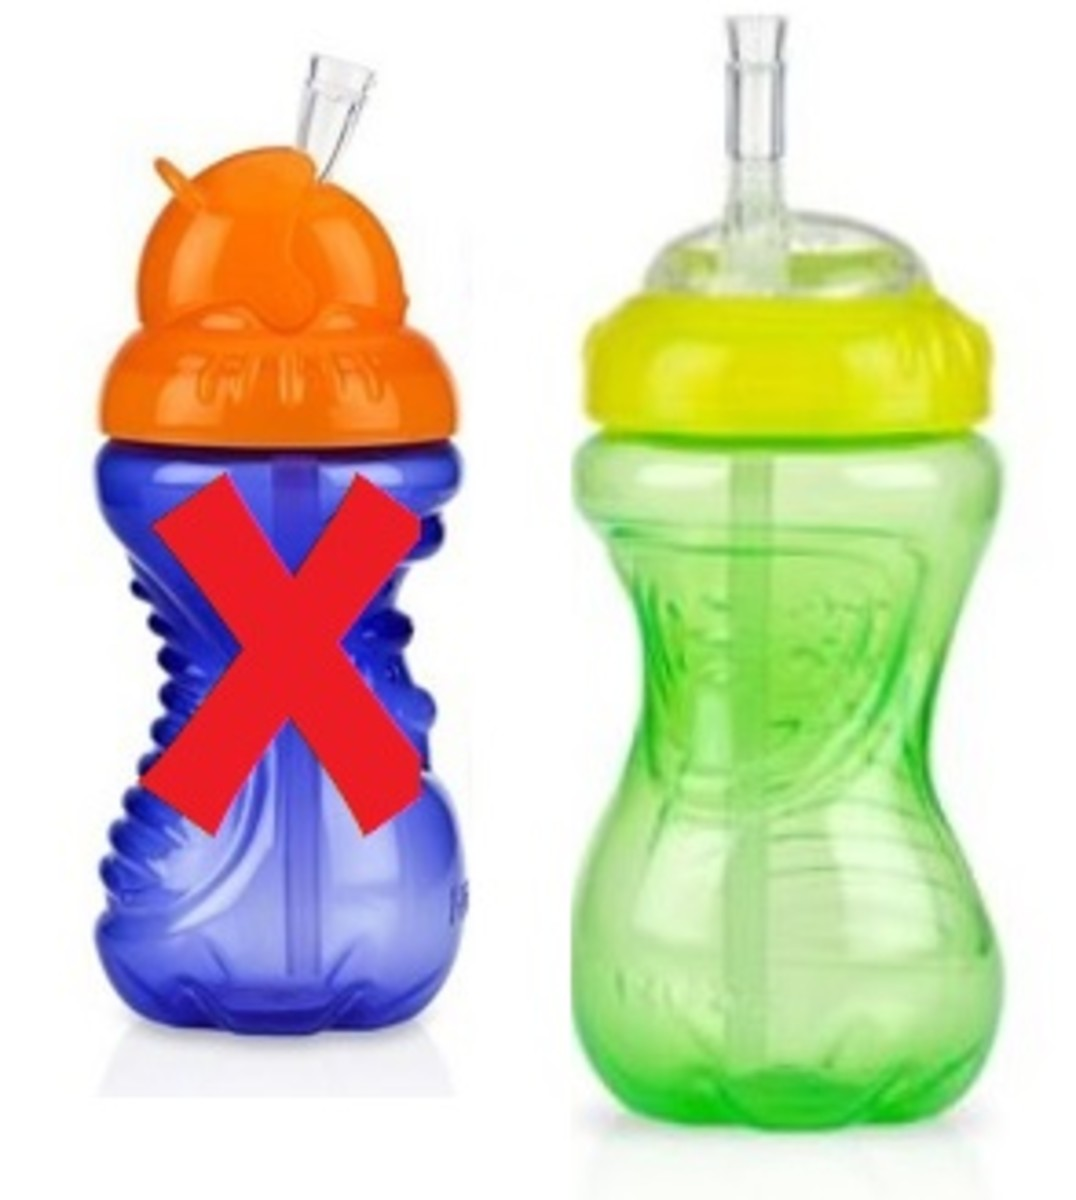 Best Nuby Sippy Cup Review - Straw Cup vs. Flip-it Cup